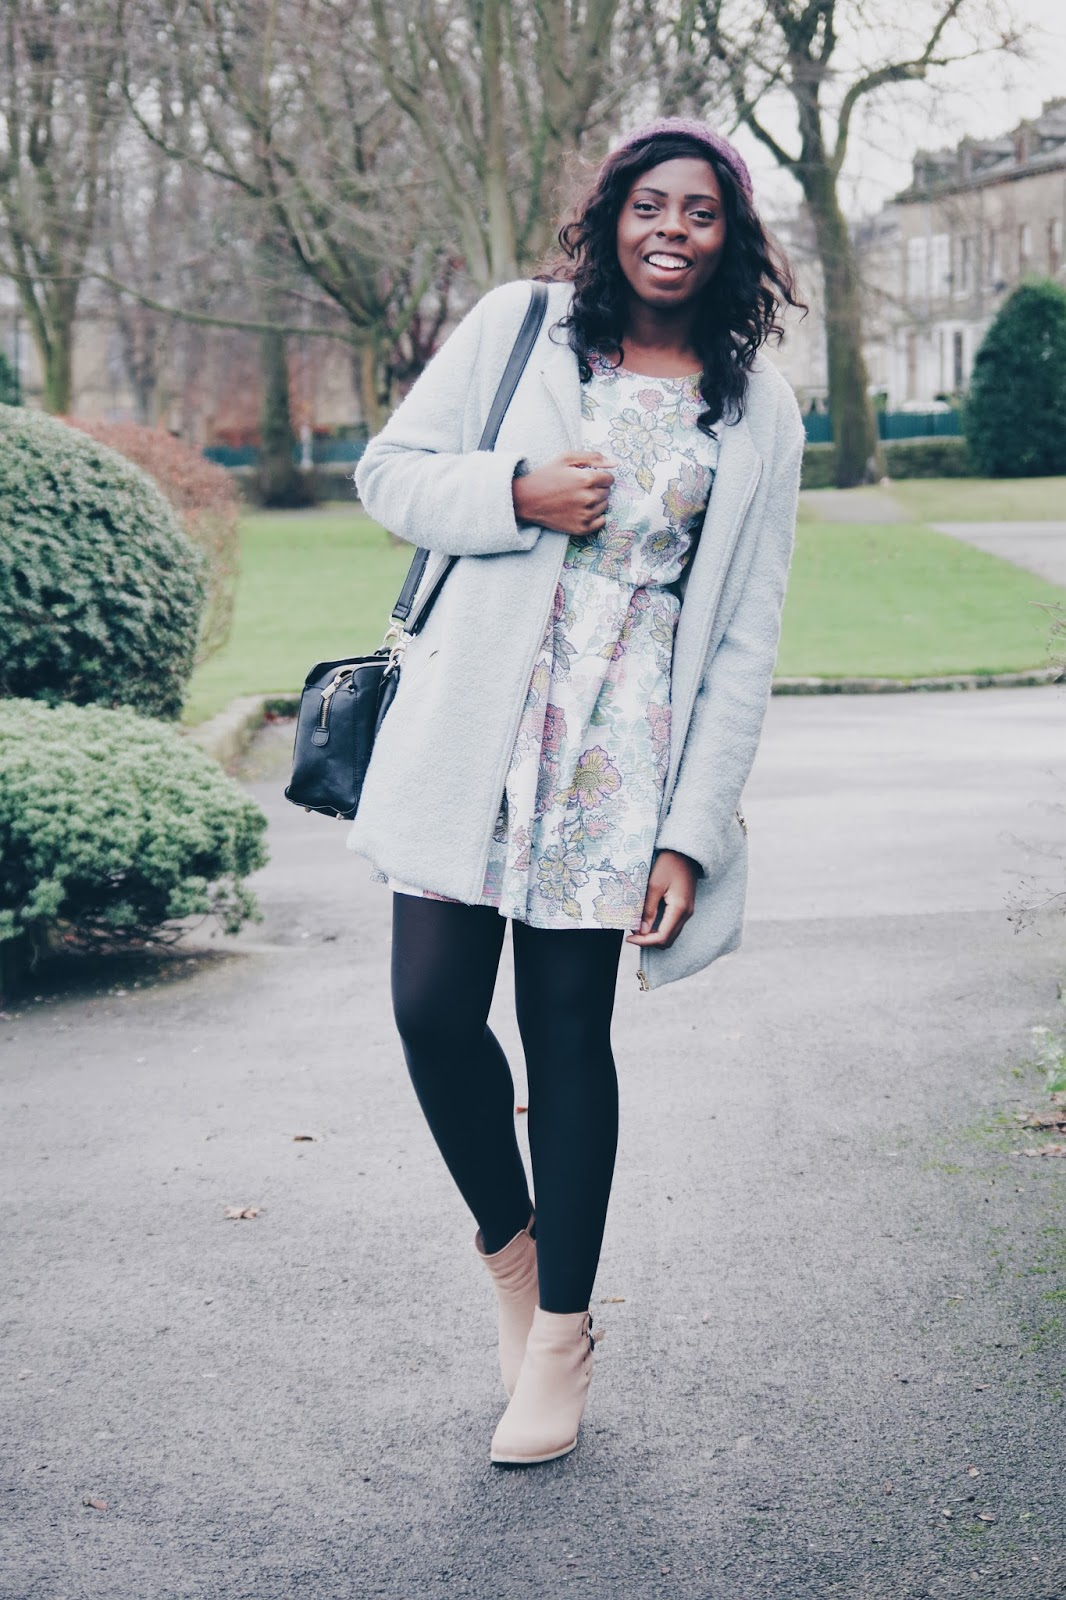 dear teenage me, anika may, winter style, winter coat, blogger style, winter fashion, ootd, floral dress, winter florals